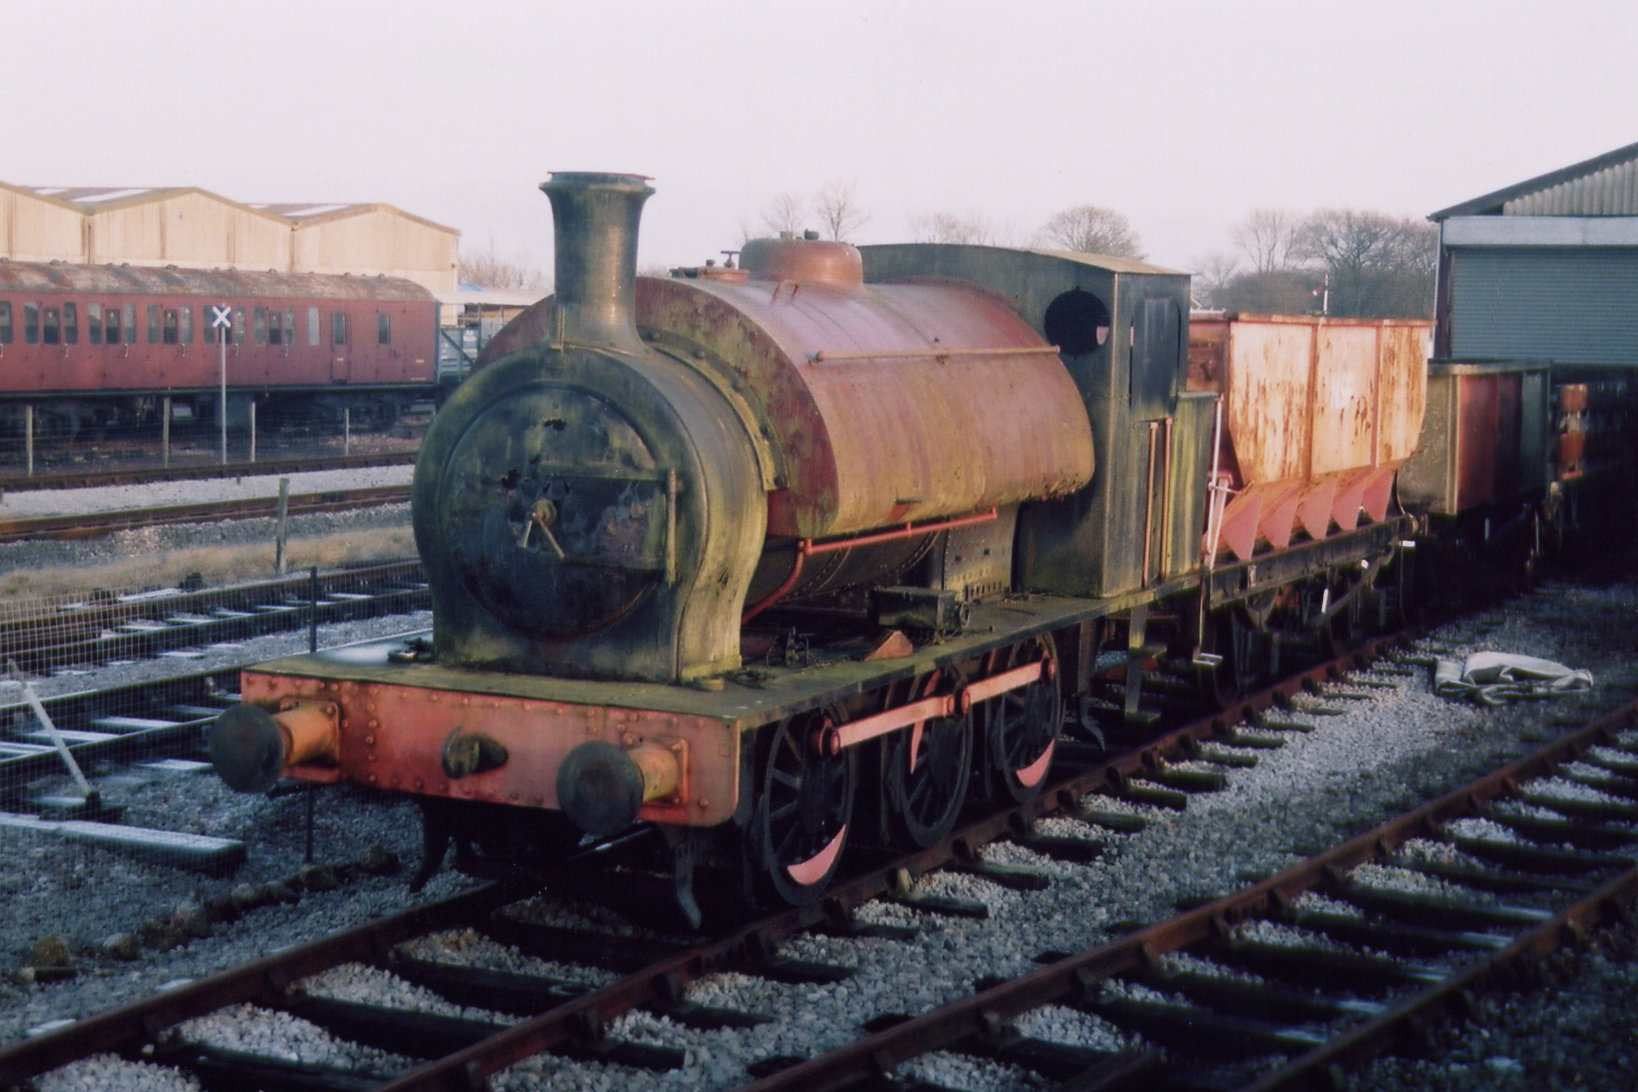 Arthur awaiting overhaul outside the Wembley Shed